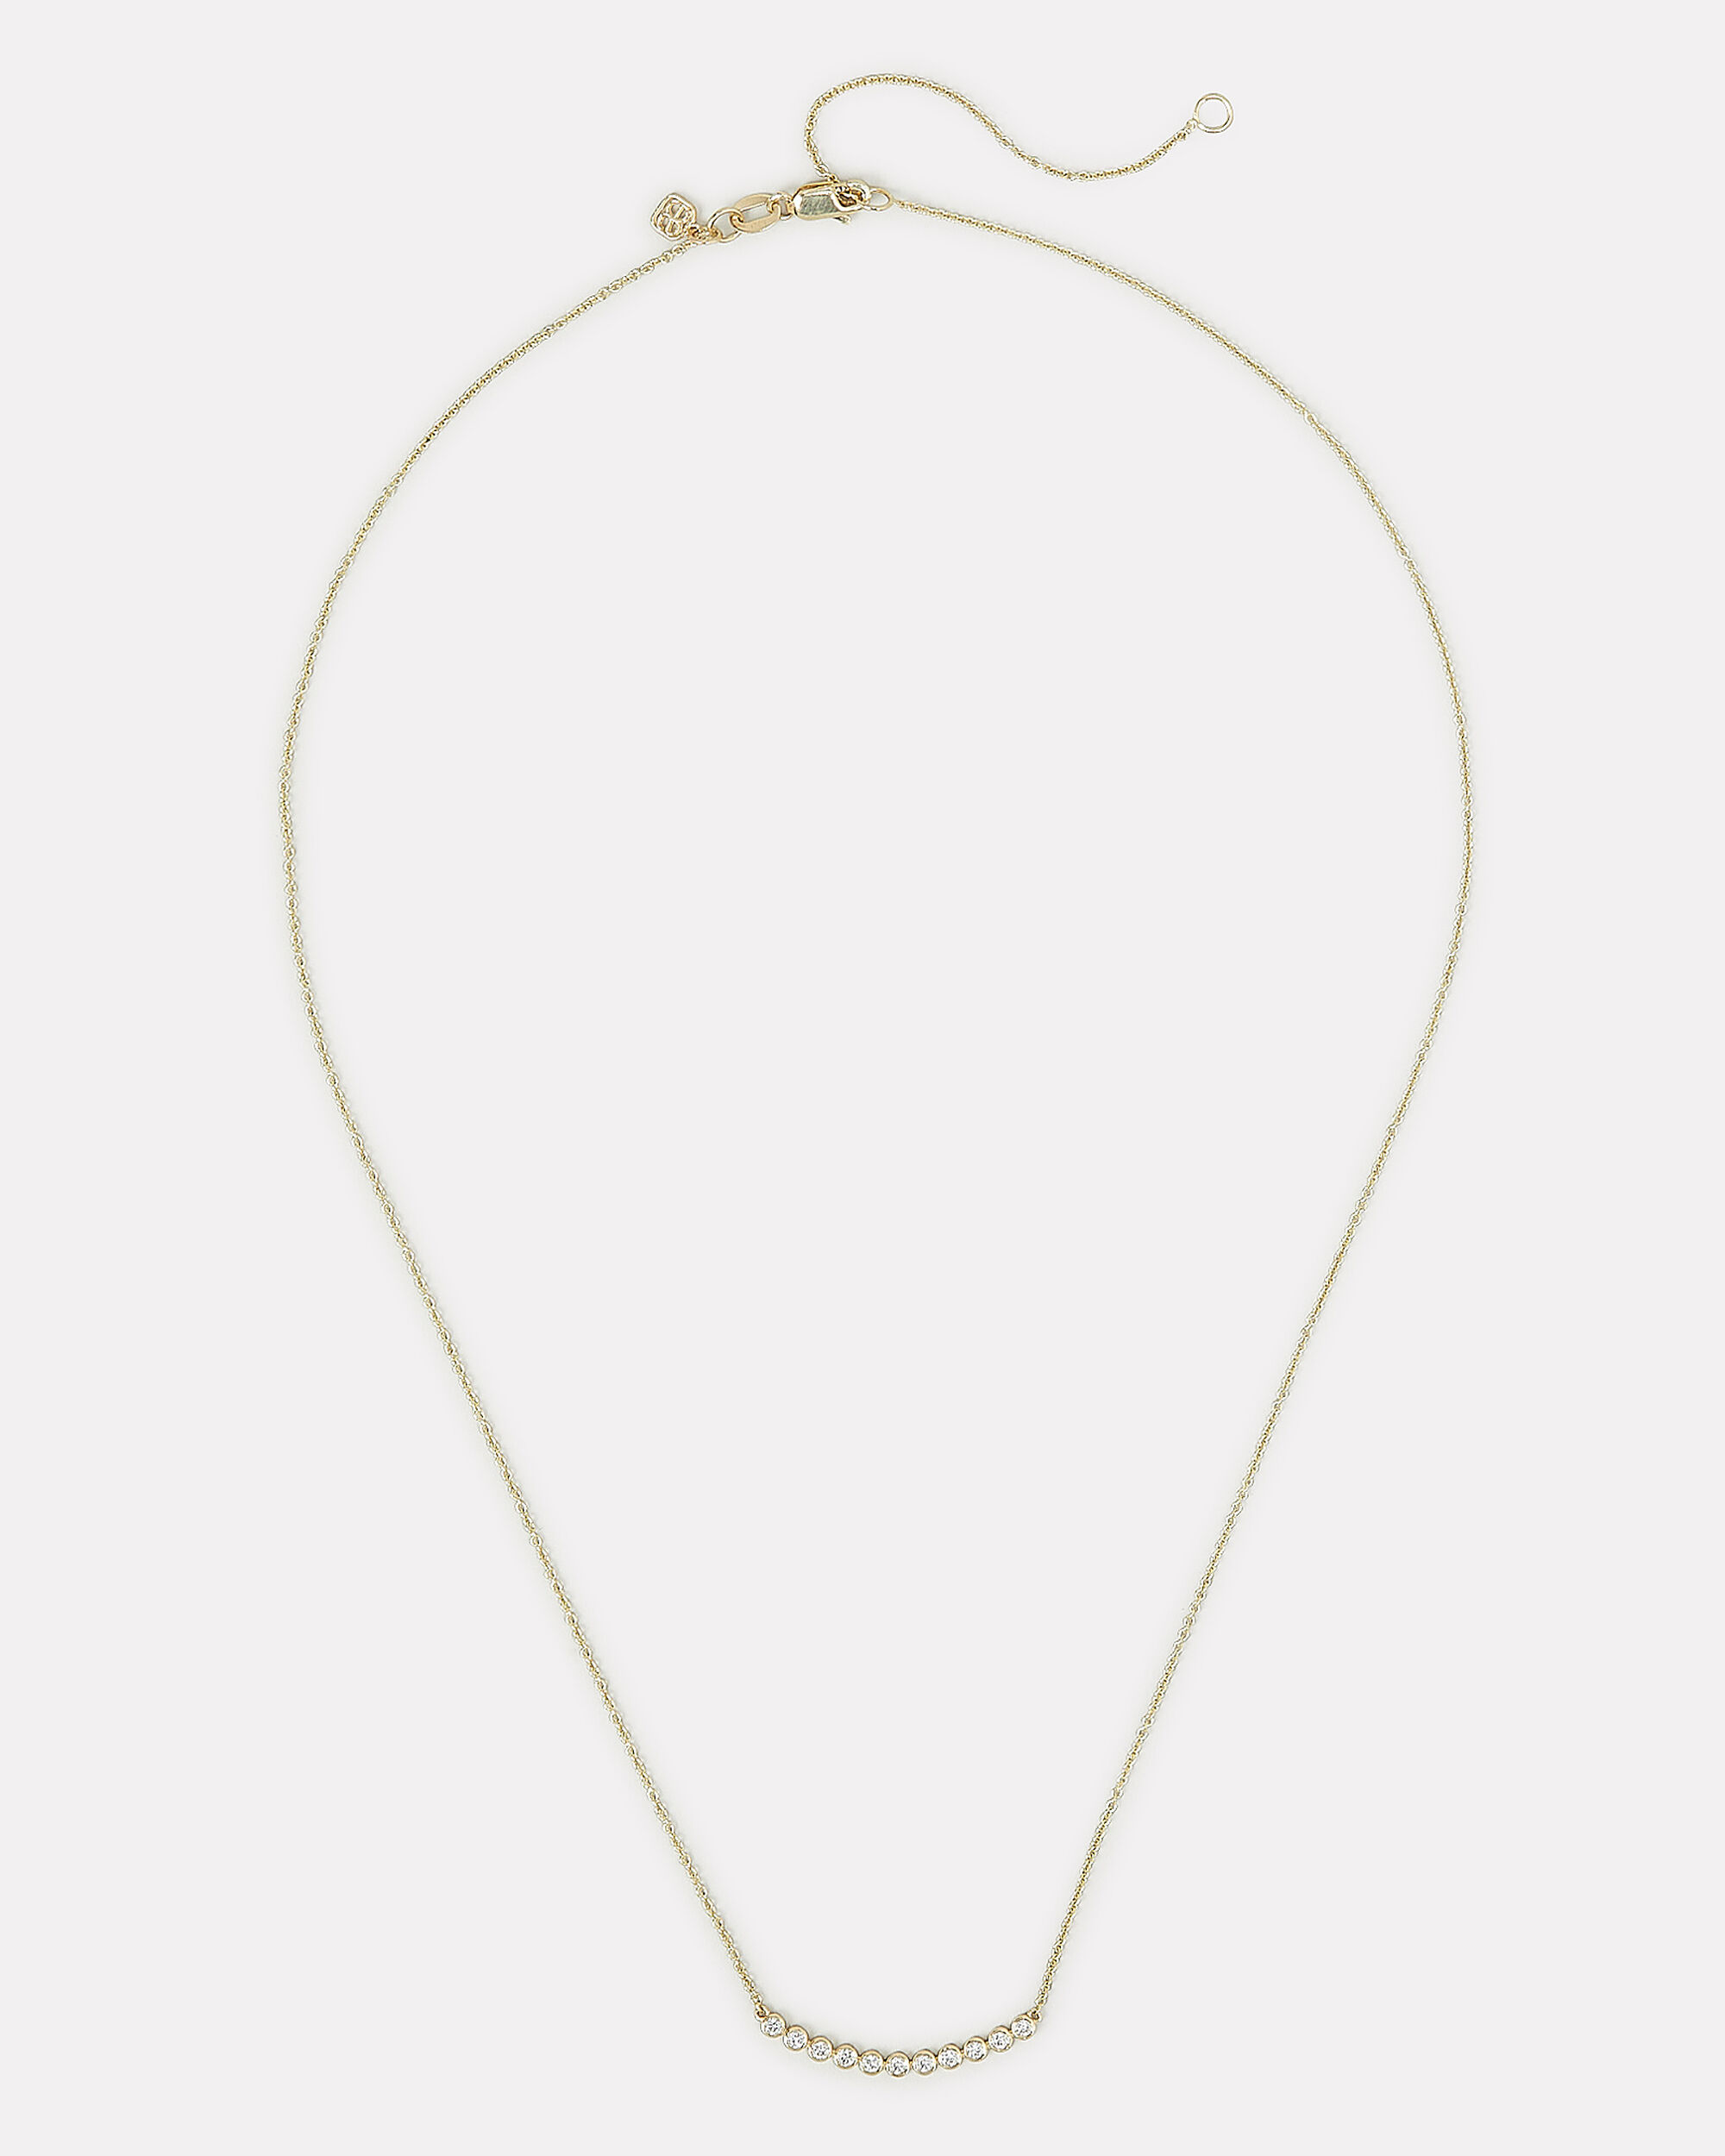 Eleven Stone Bezel Necklace, GOLD, hi-res